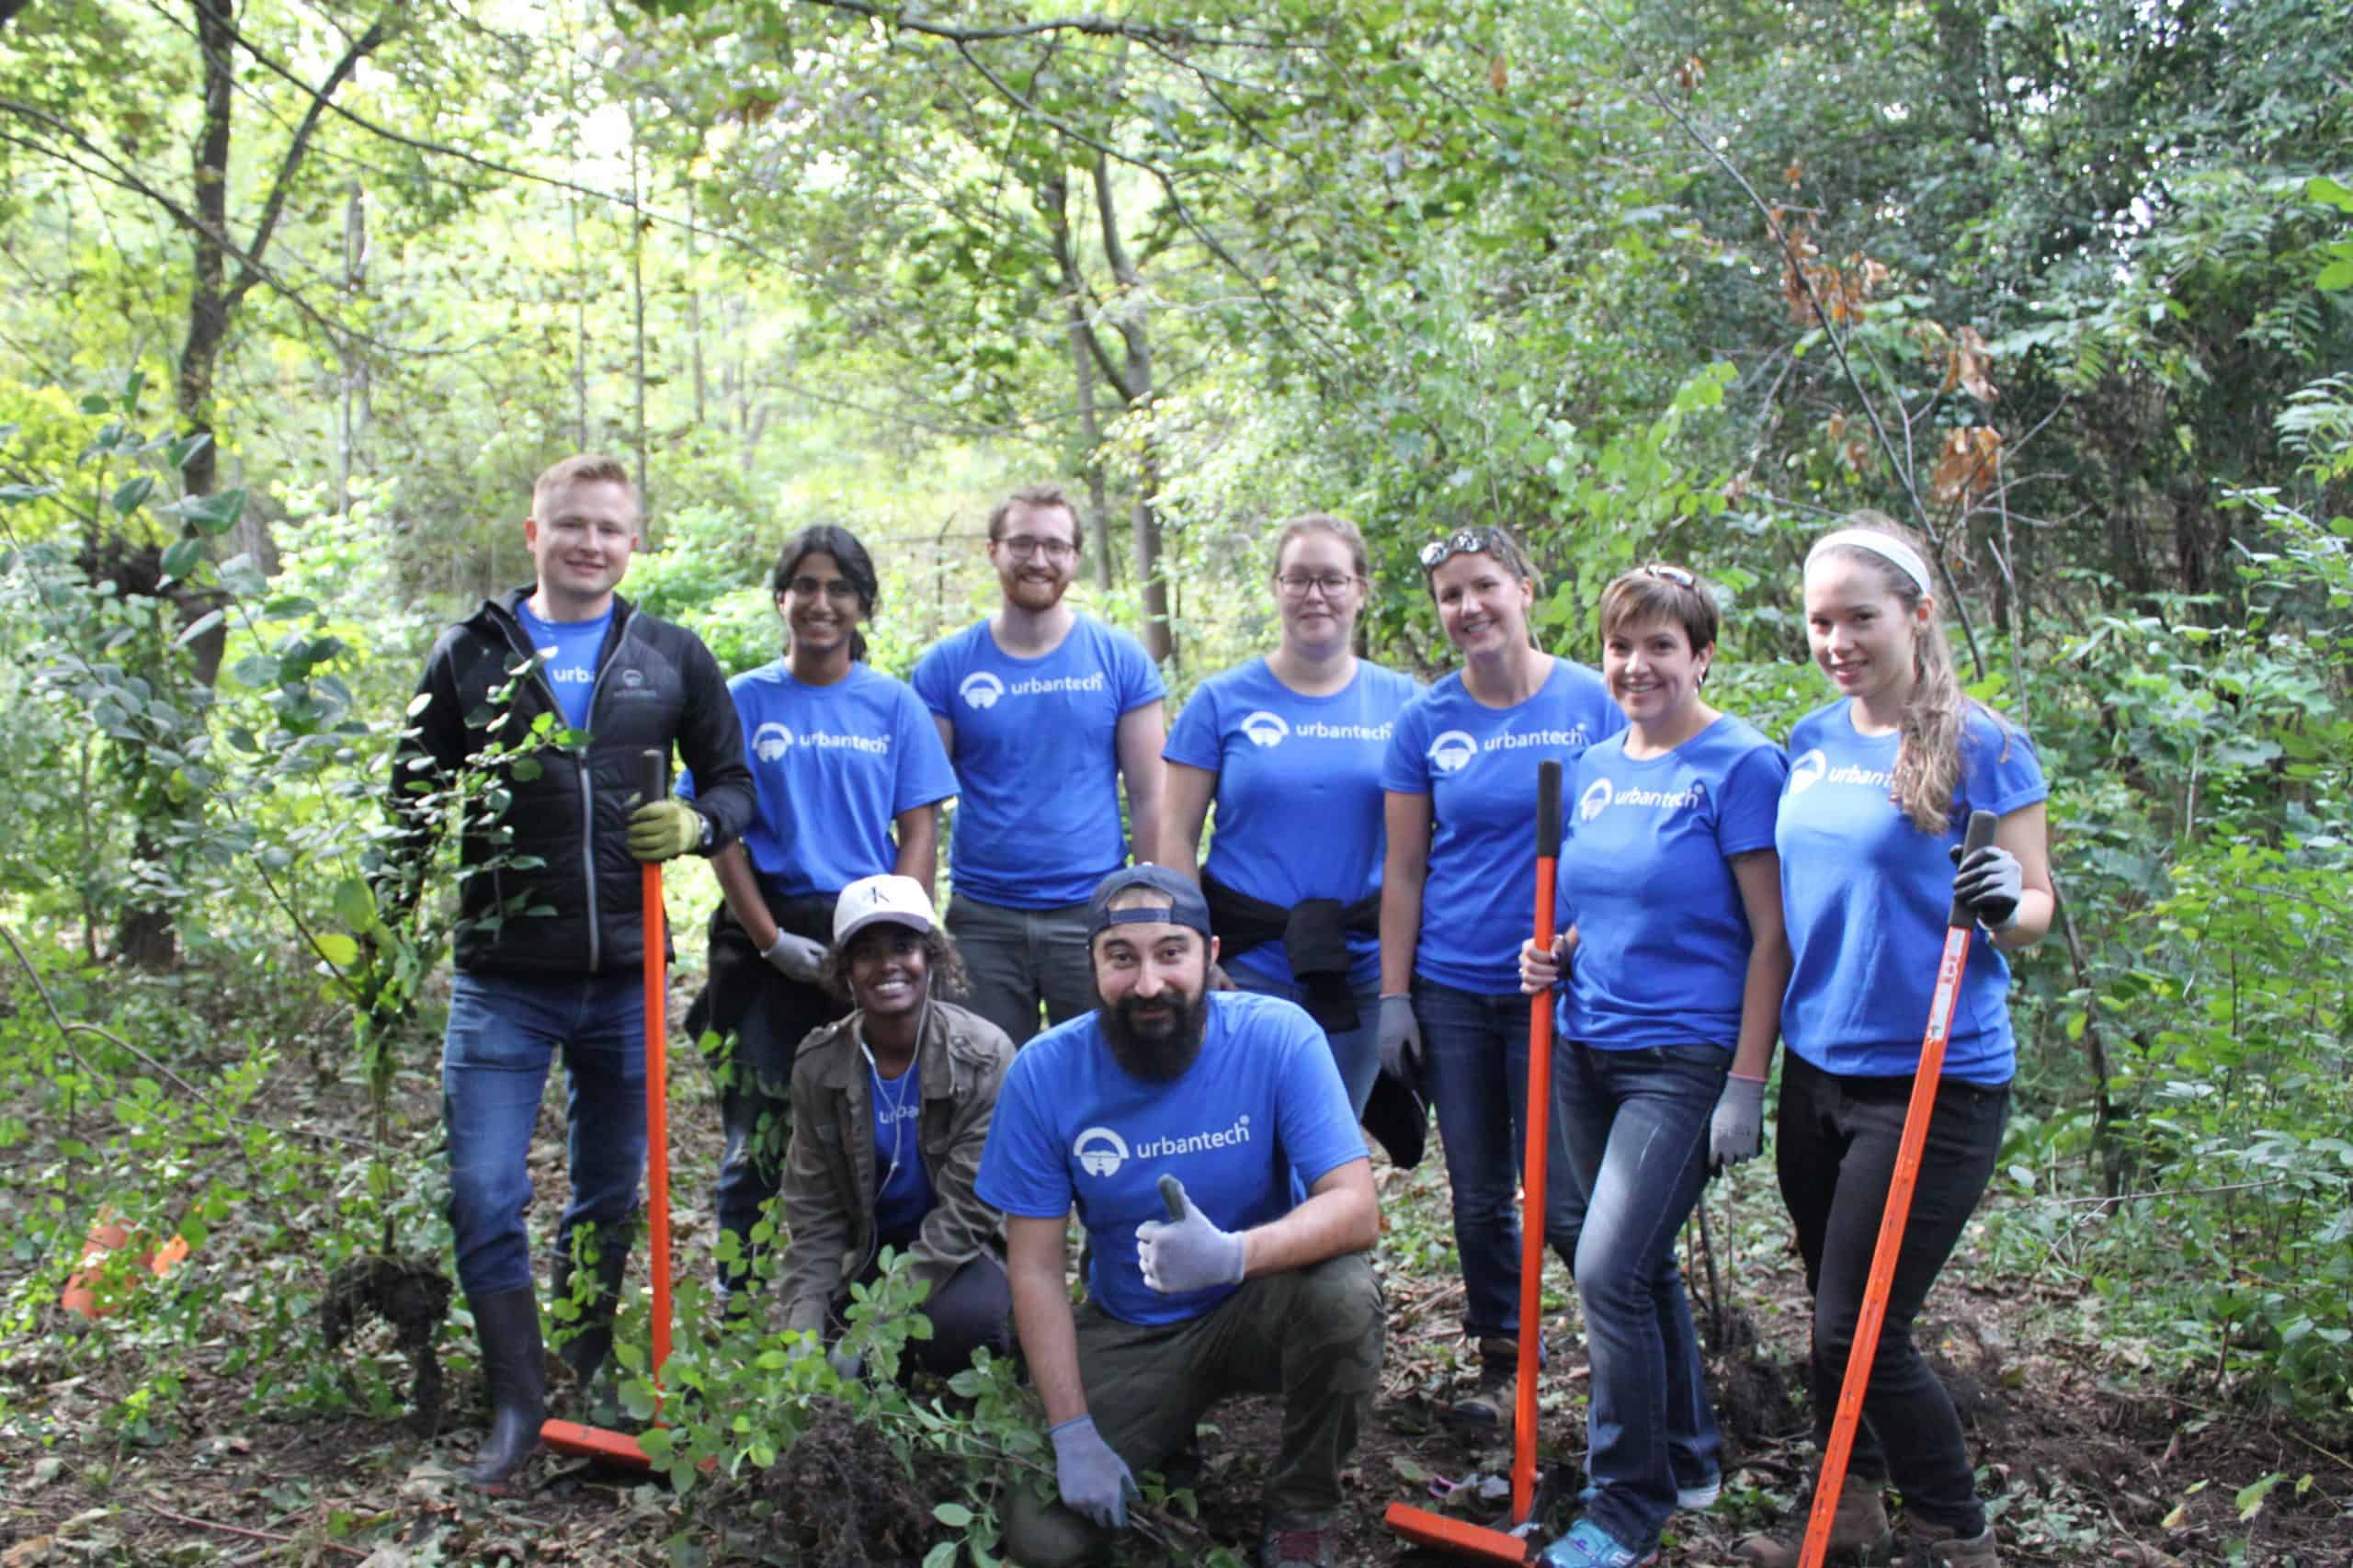 a group of people standing in the forest with hand tools removing invasive species